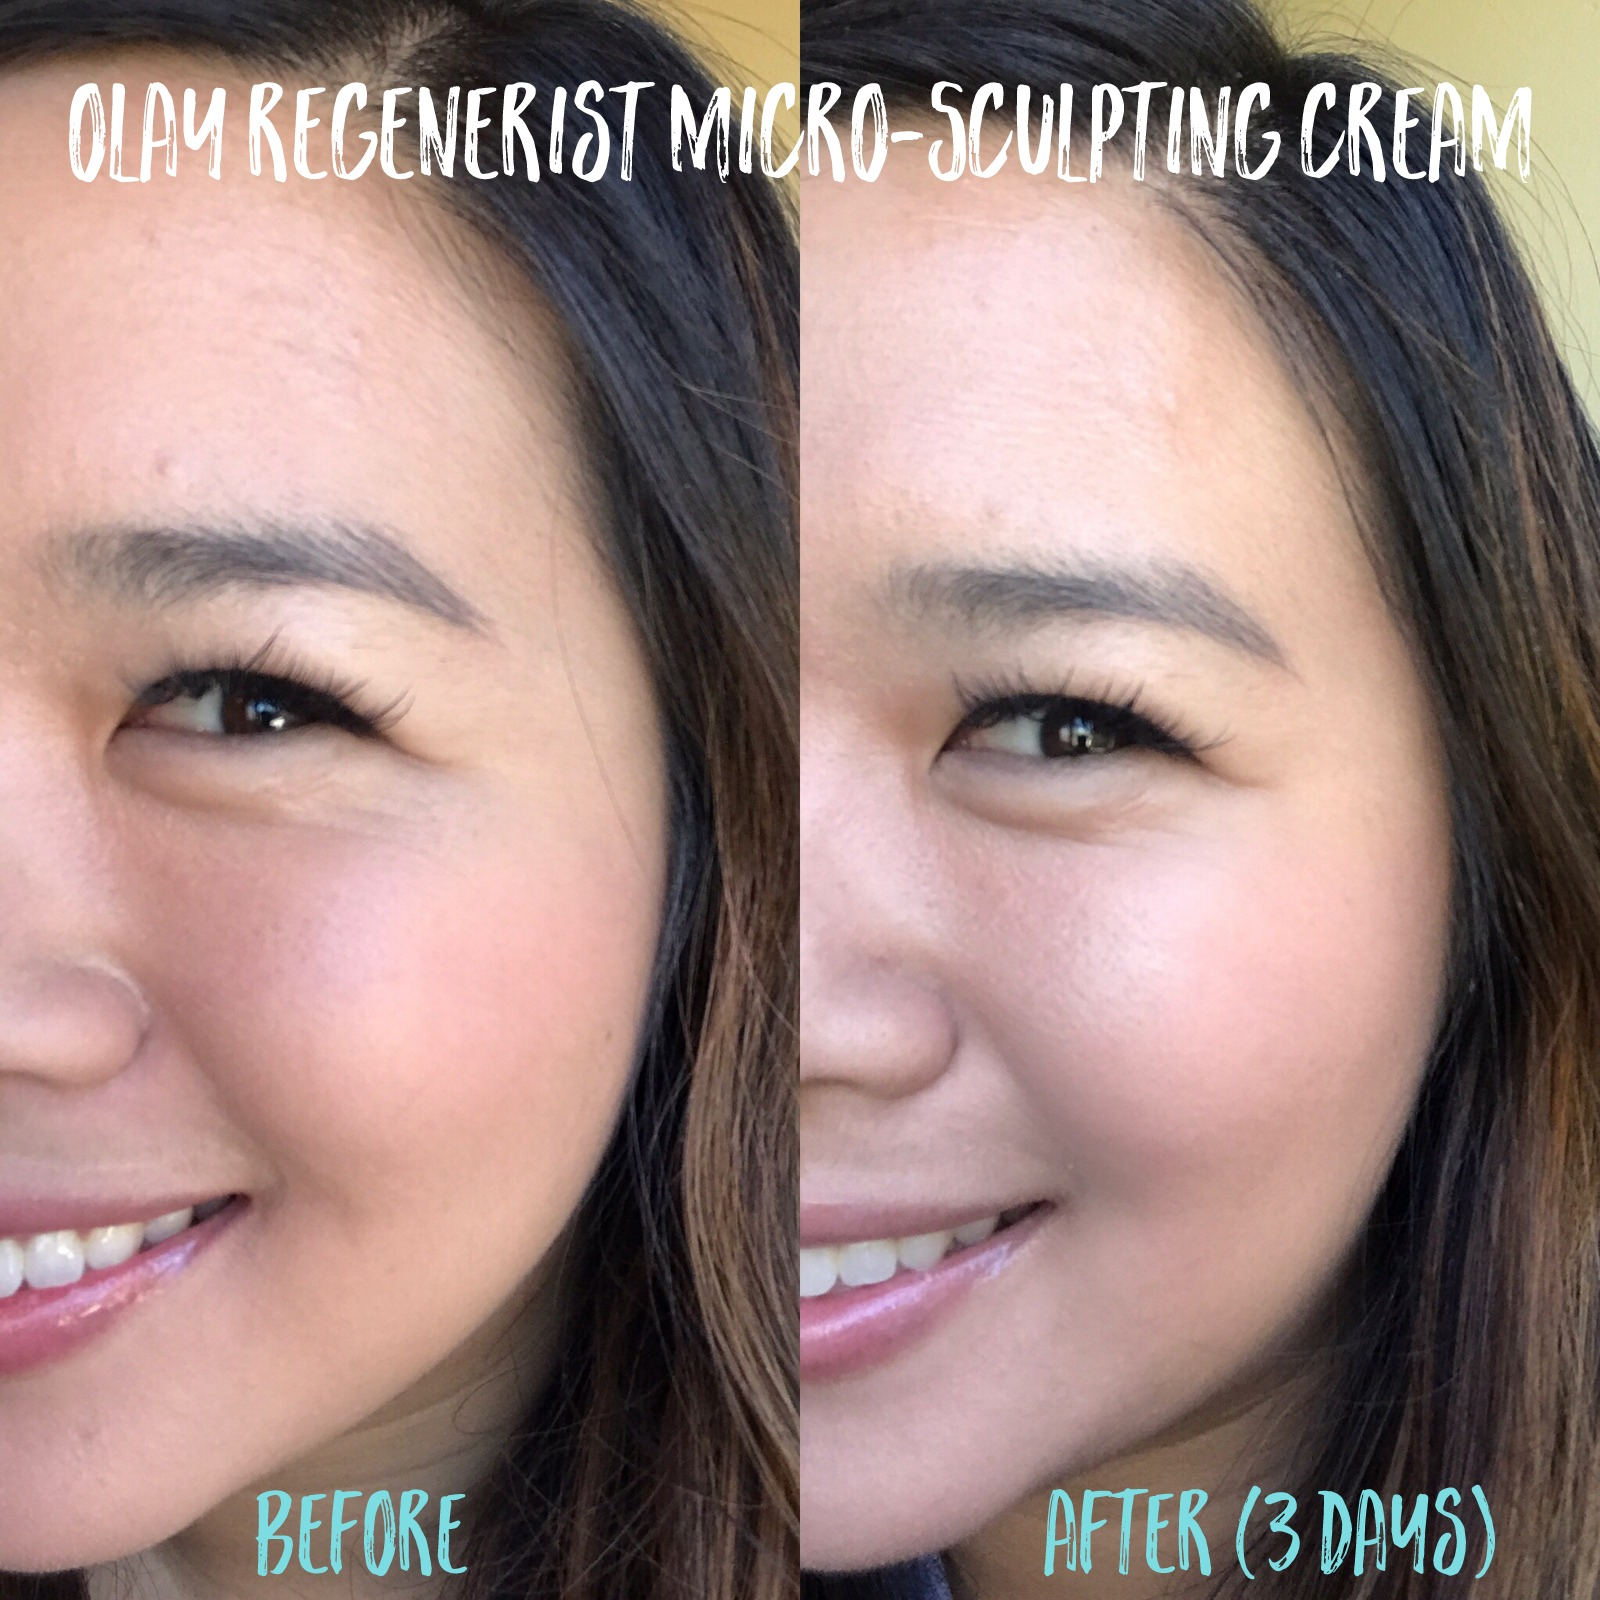 Olay Micro-Sculpting Cream Before and After